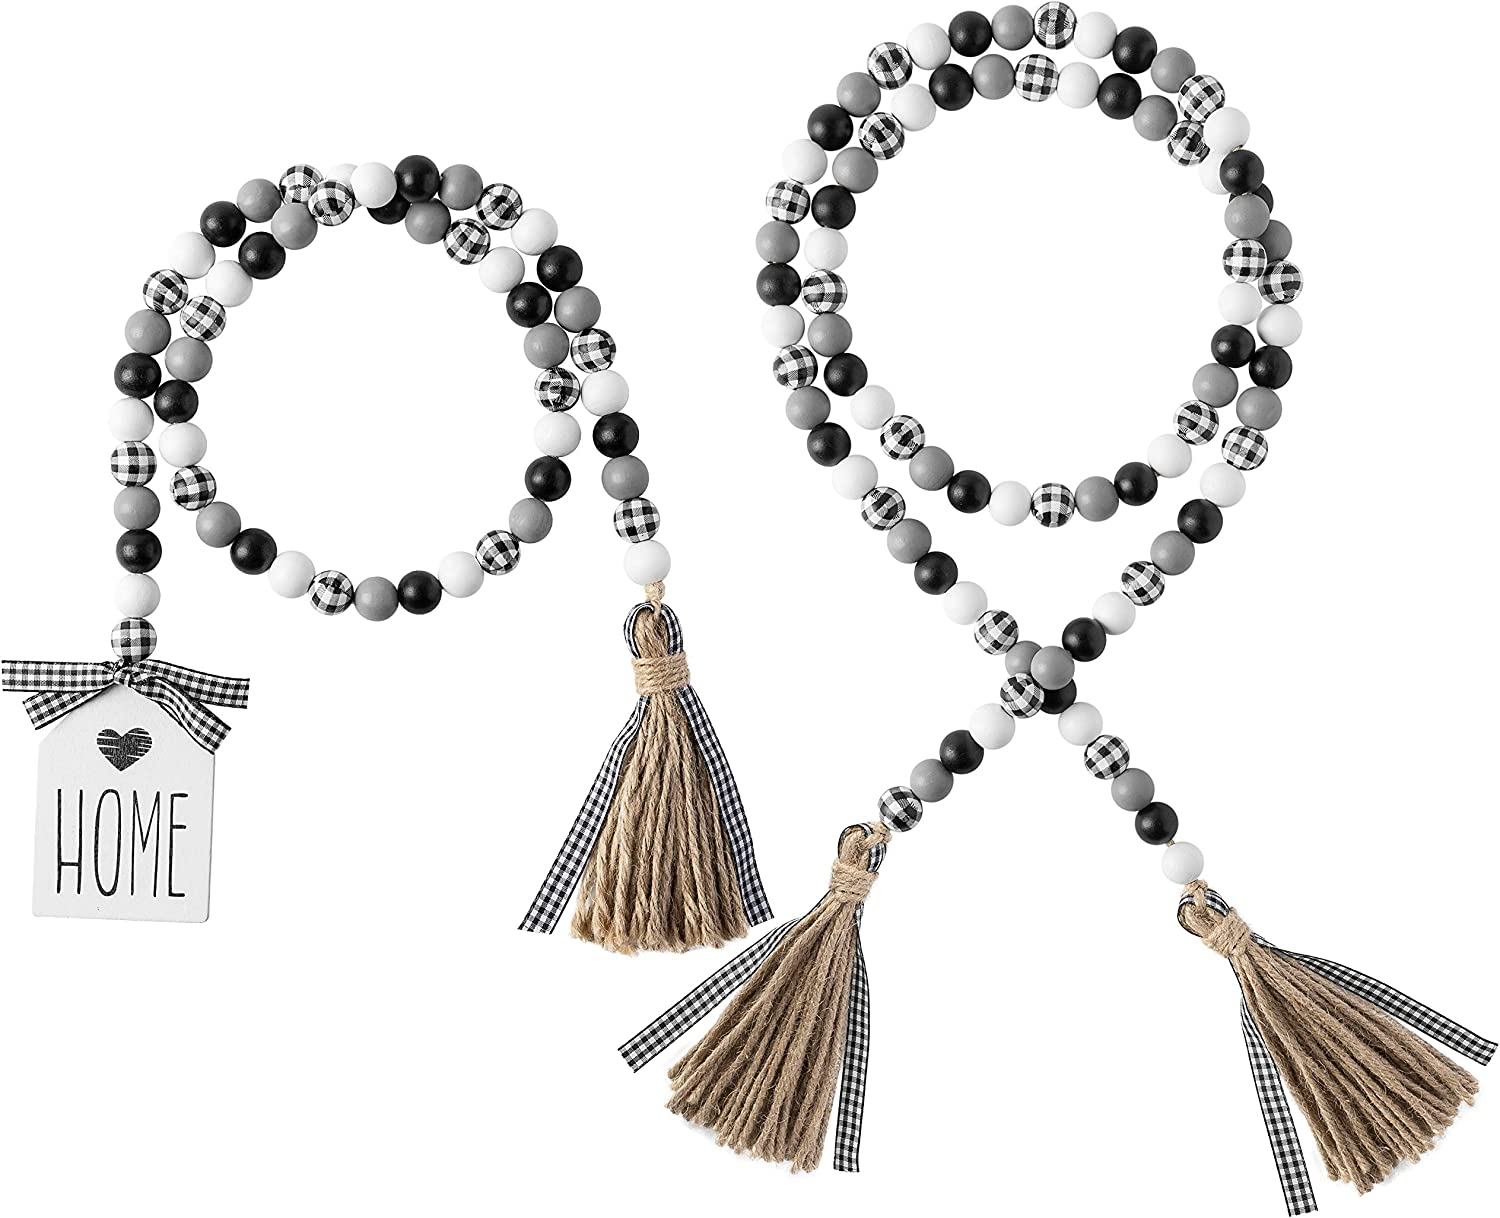 2Pcs Black&White Plaid Wood Bead Garland with Tassel Rustic Farmhouse Tiered Tray Decorations Country Rustic Wall Hanging Decor Natural Wood Bead Decoration for Summer Indoor Home Festival